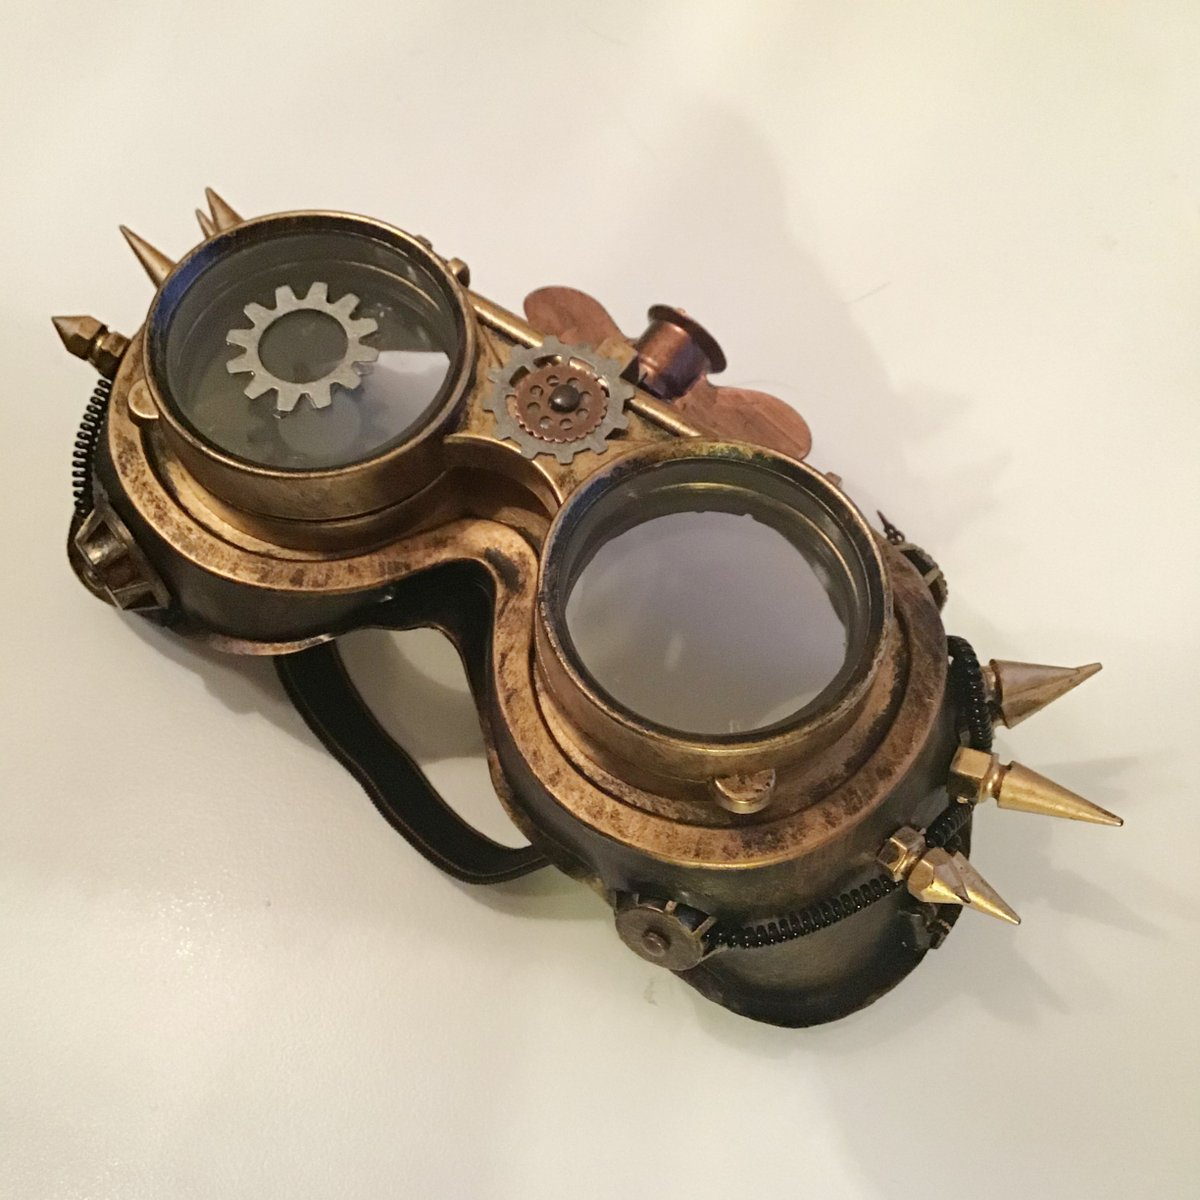 Book launch for The Guardians of Zoone is coming up, so I've decided I'll dress to theme and go as a portal pirate. Which means upping the #steampunk factor on these goggles!